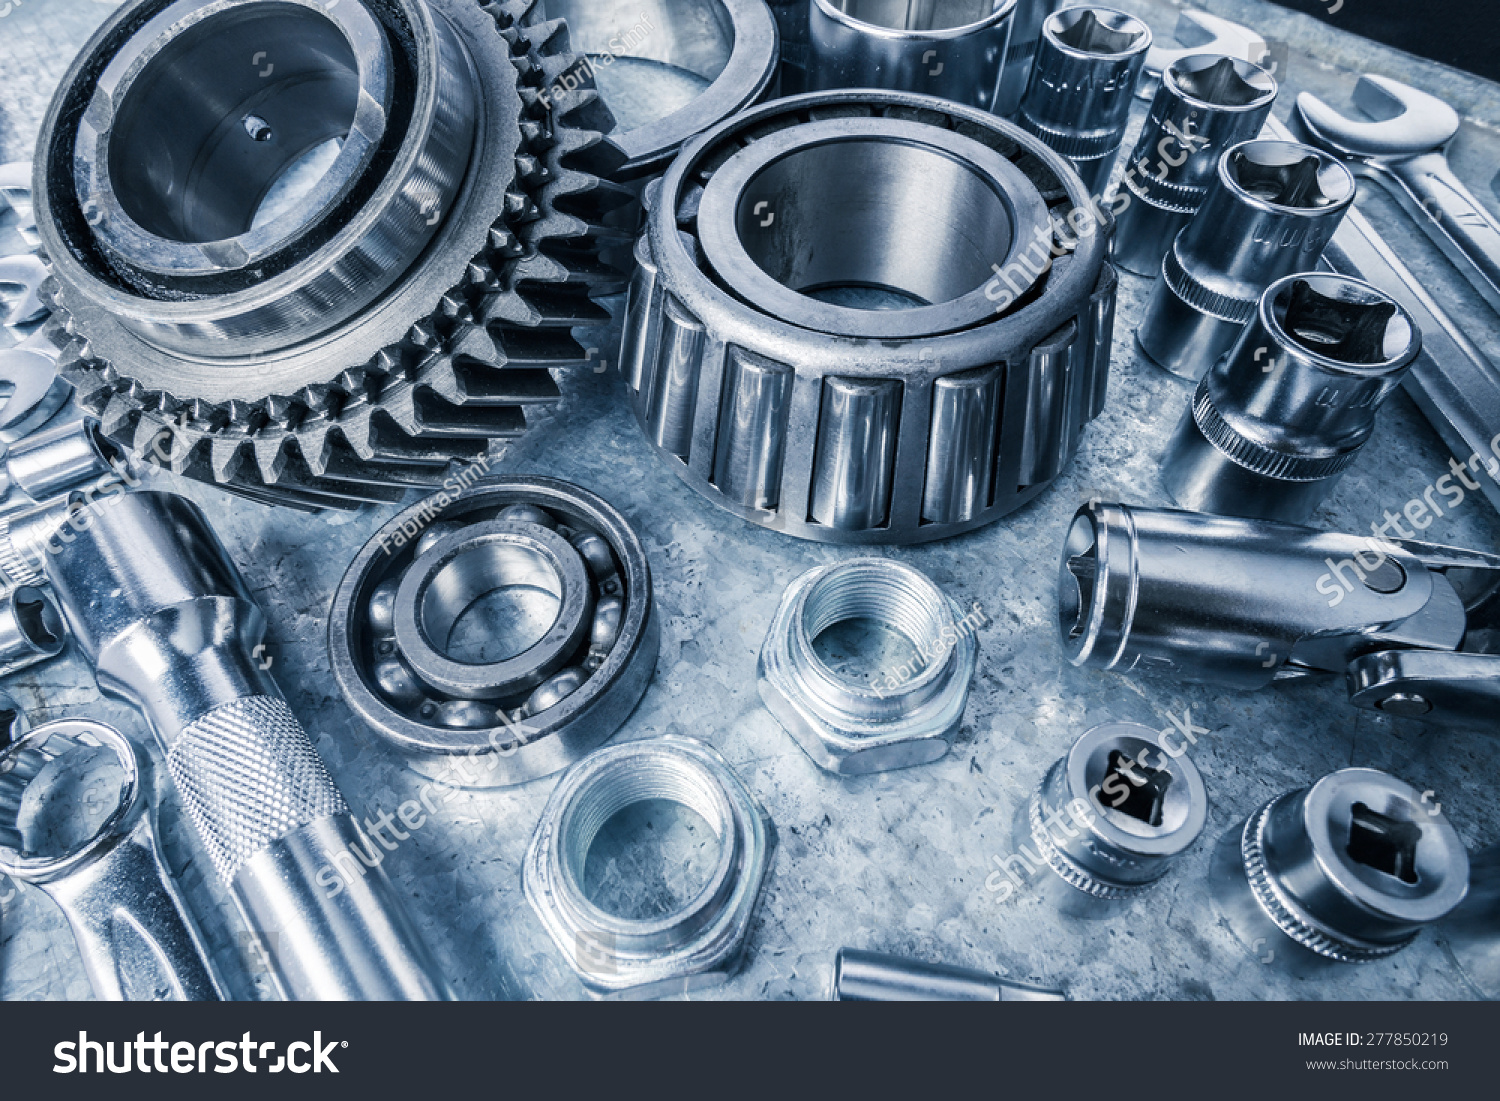 Car Engine Parts On Metal Background Stock Photo (Royalty Free ...